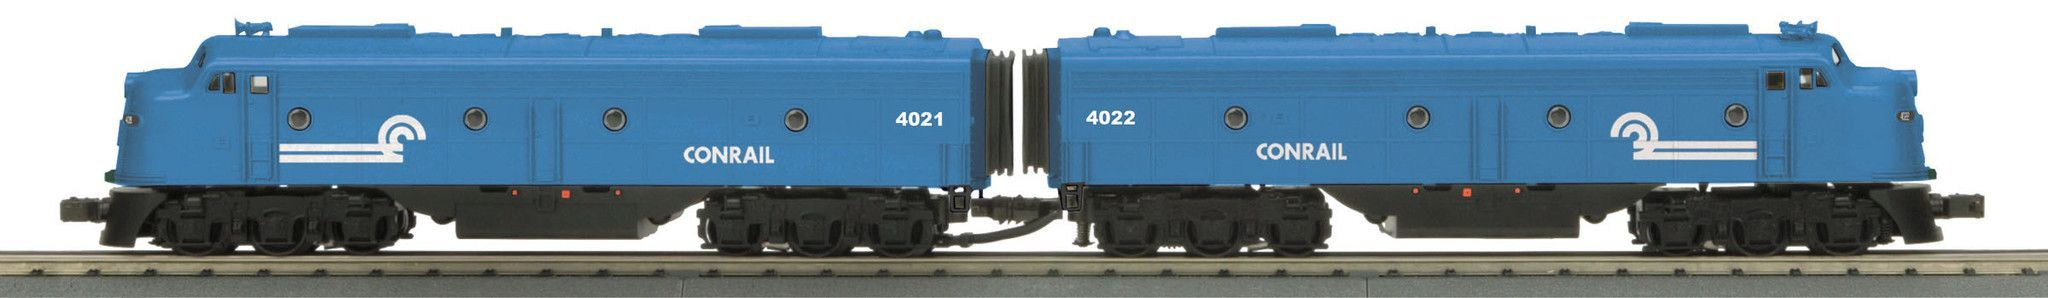 30 20179 1 conrail e 8 aa diesel engine set products conrail aa diesel engine set electric trains o gauge trains engines passenger cars tender ohio electric train 3 rail fandeluxe Choice Image